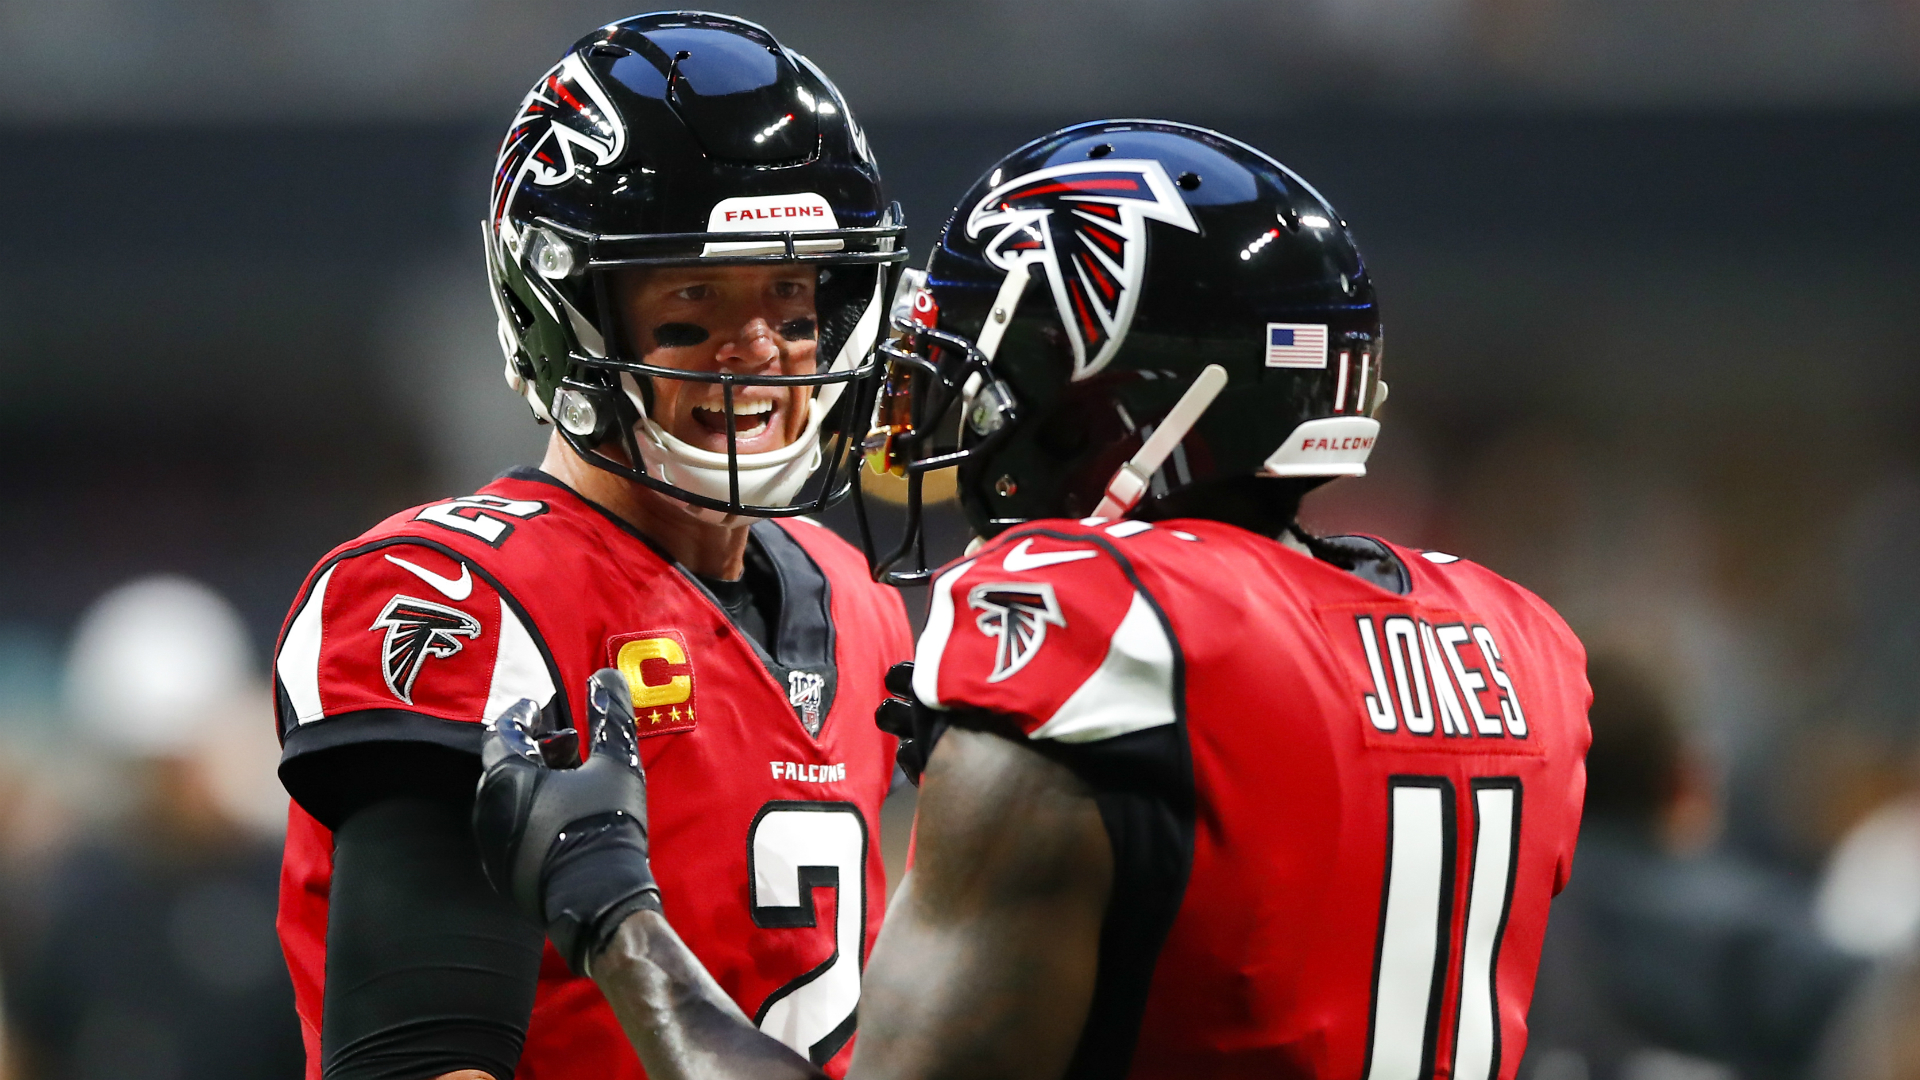 Where do the new Falcons uniforms rank among Nike NFL redesigns?